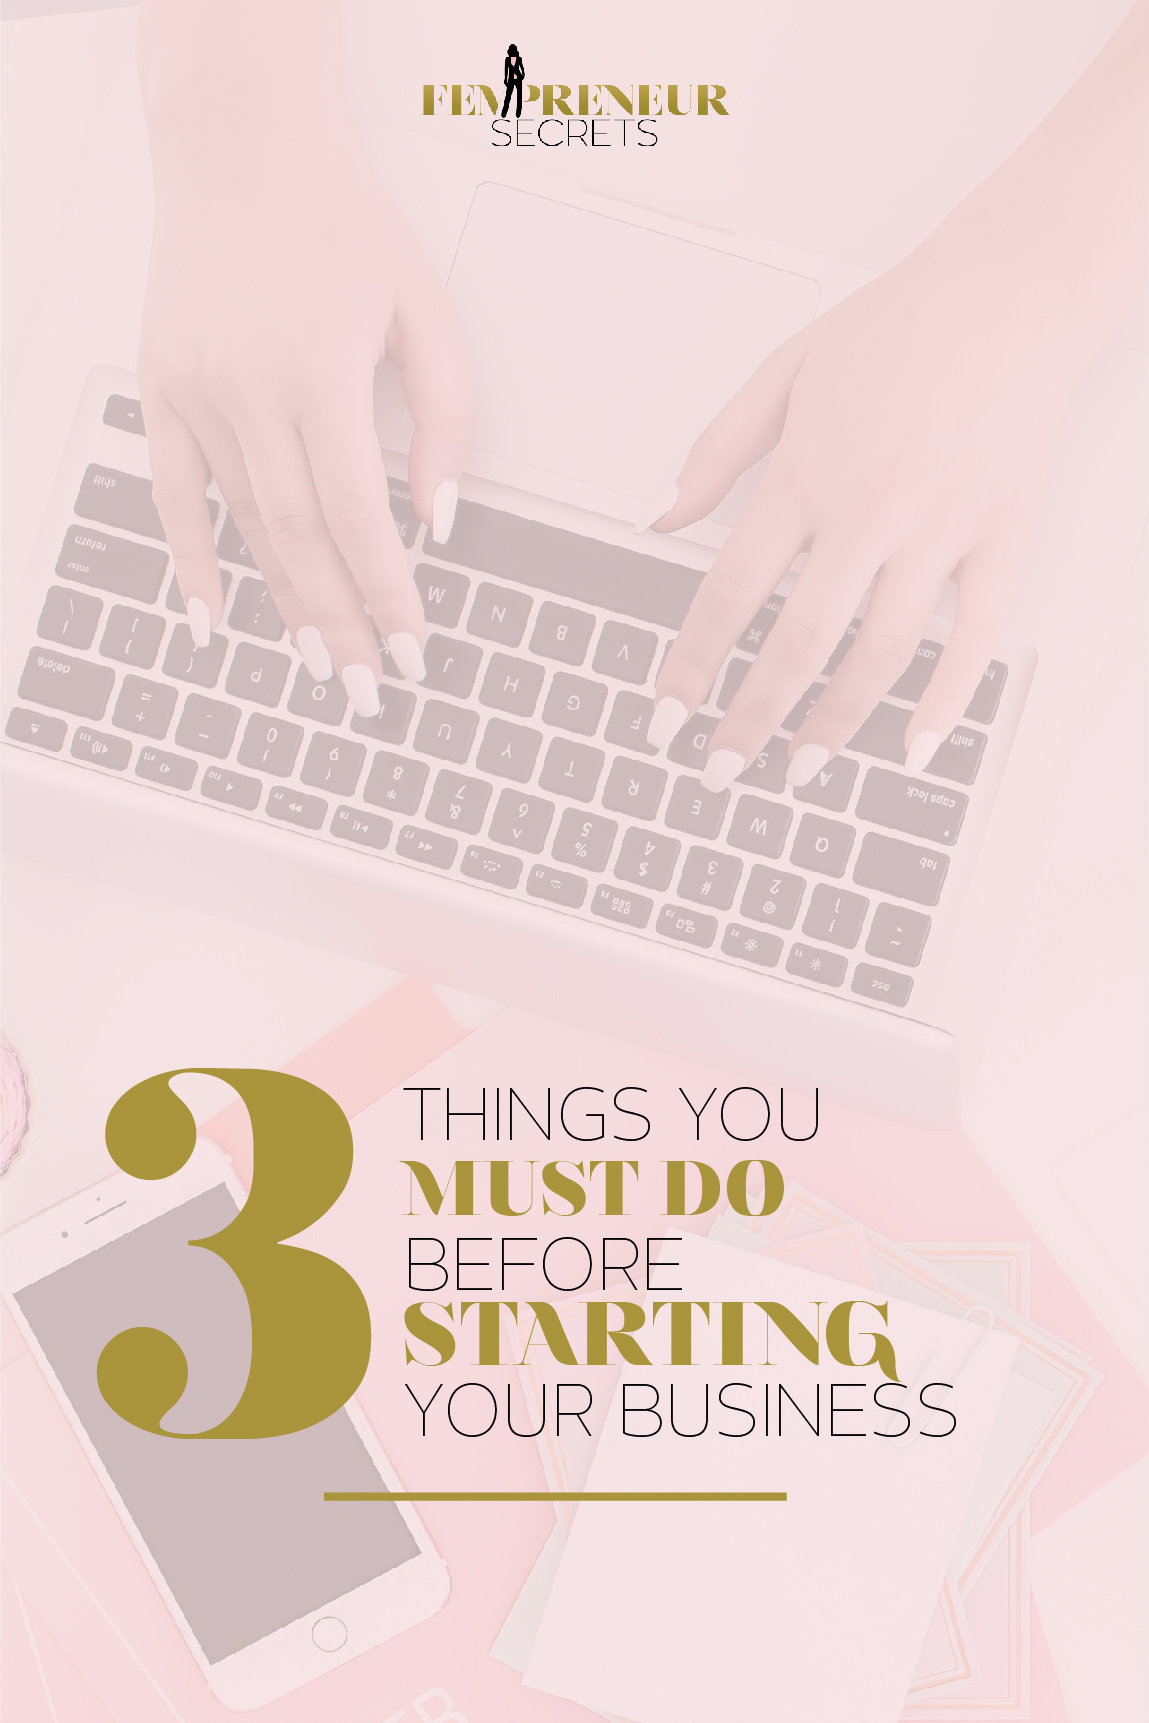 007-3-Things-To-Do-Before-Starting-Your-Business_Pinterest-2.jpg